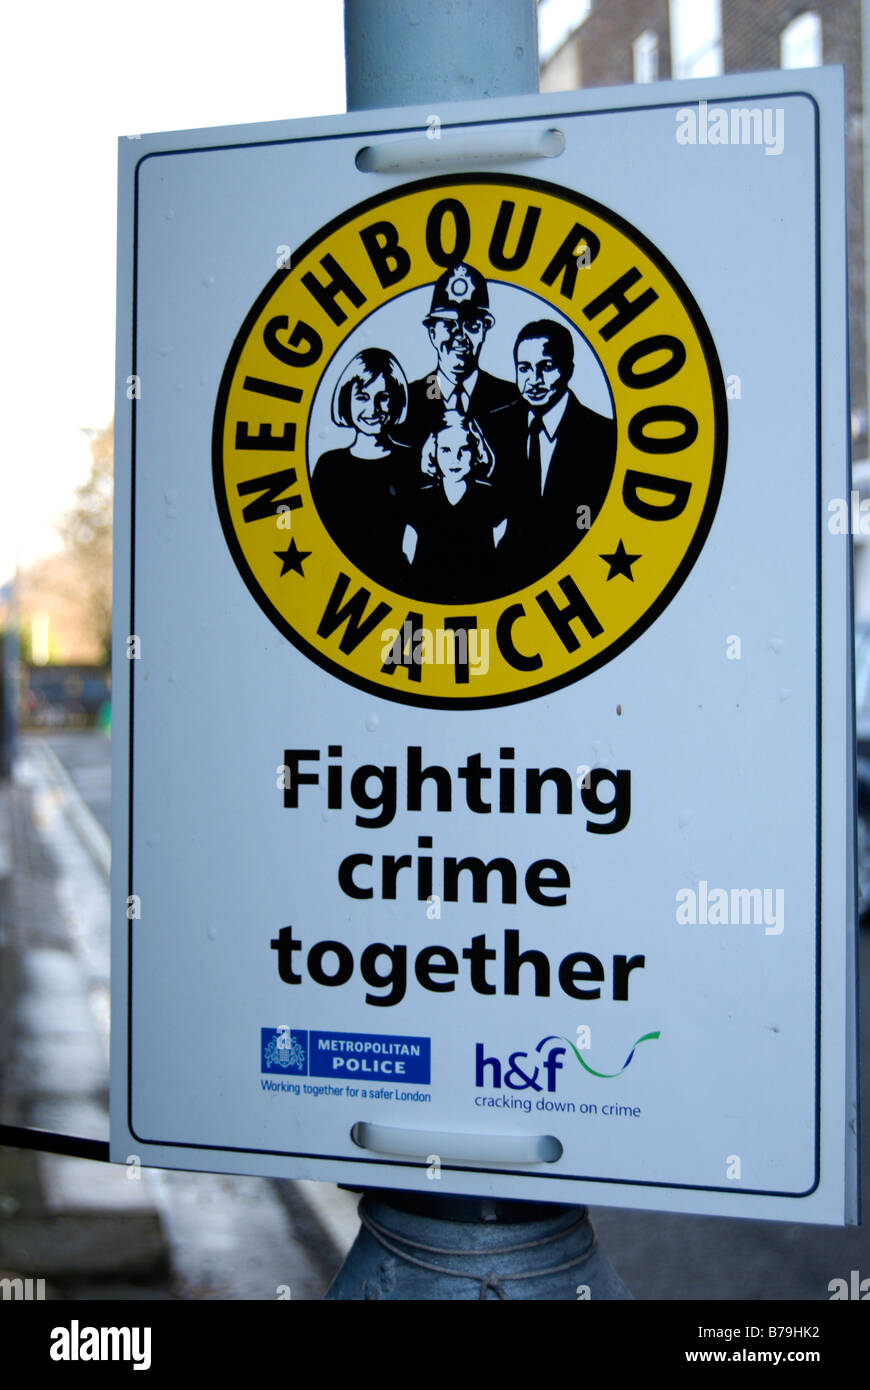 metropolitan police neighbourhood watch sign on a street in the london borough of hammersmith and fulham, england - Stock Image